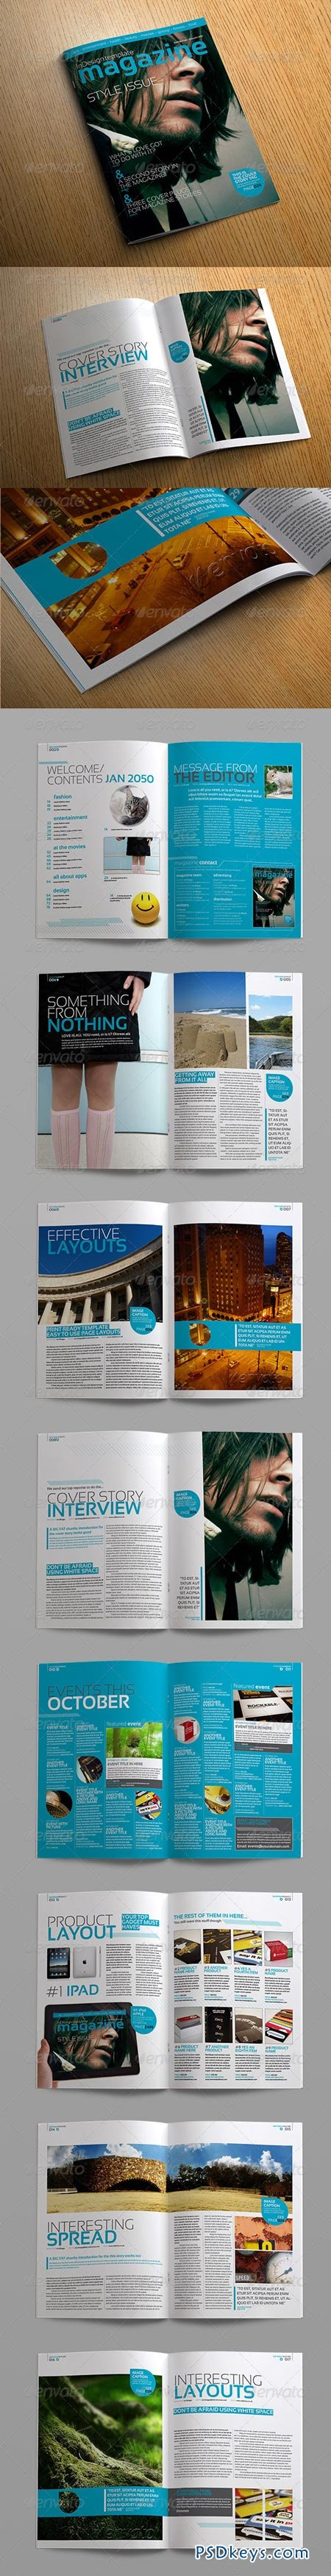 Stylish InDesign Magazine Template 264182 » Free Download Photoshop ...